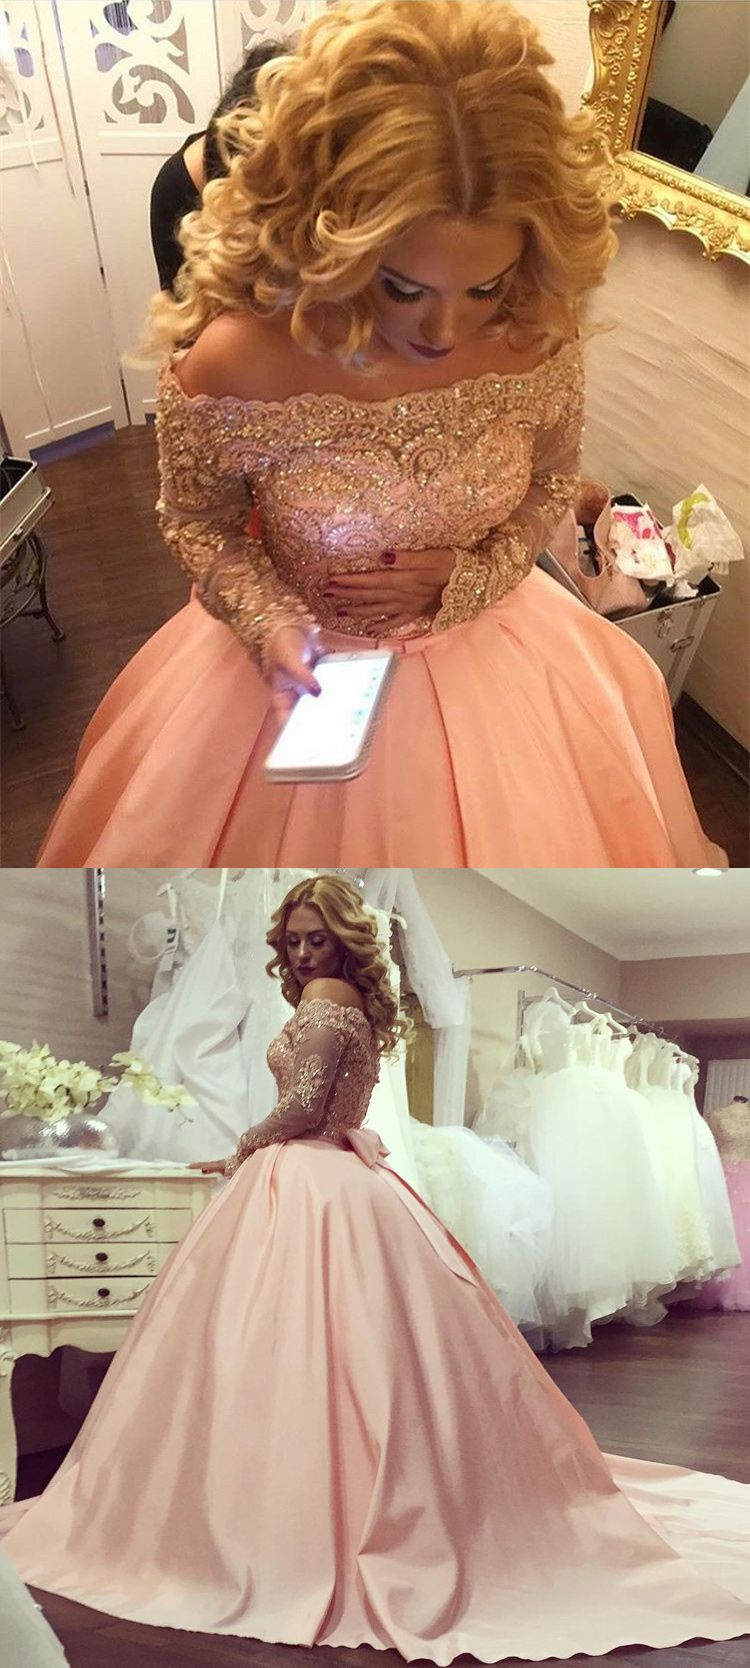 Honorable ball gown pink prom dress off the shoulder long sleeves